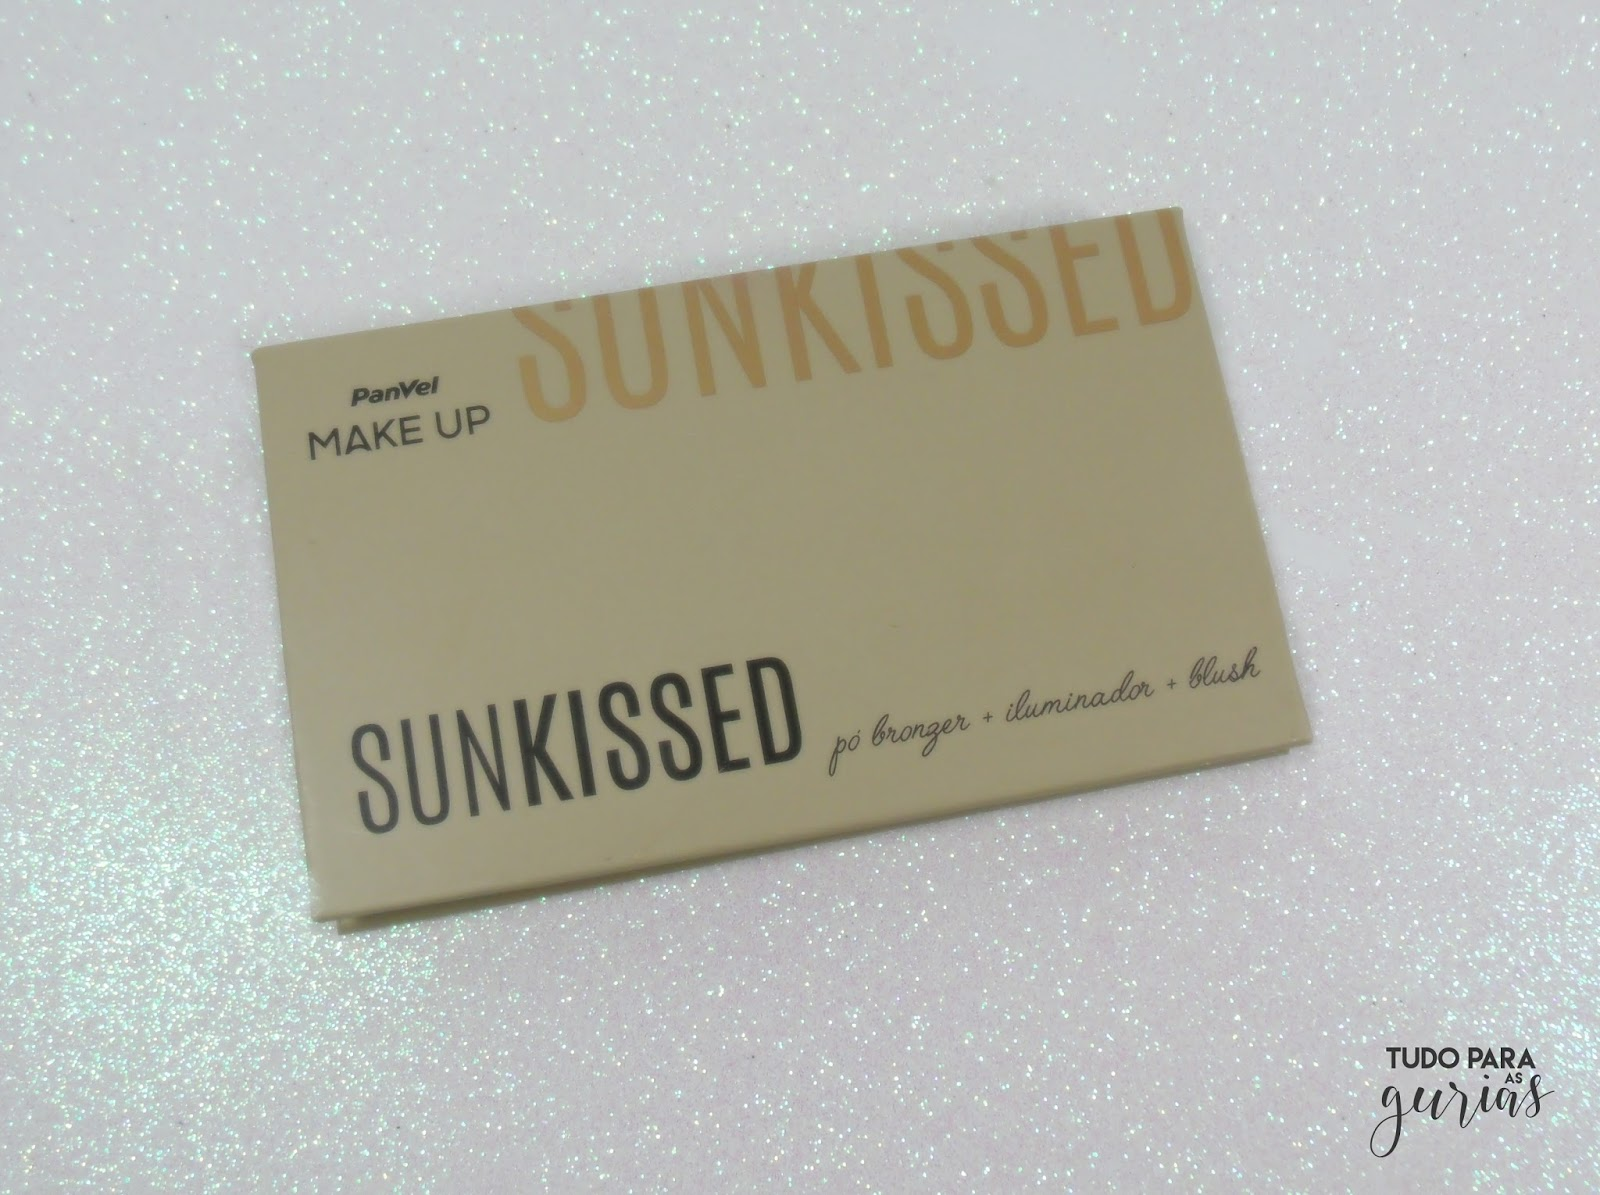 RESENHA: PALETA SUNKISSED DA PANVEL MAKE UP.